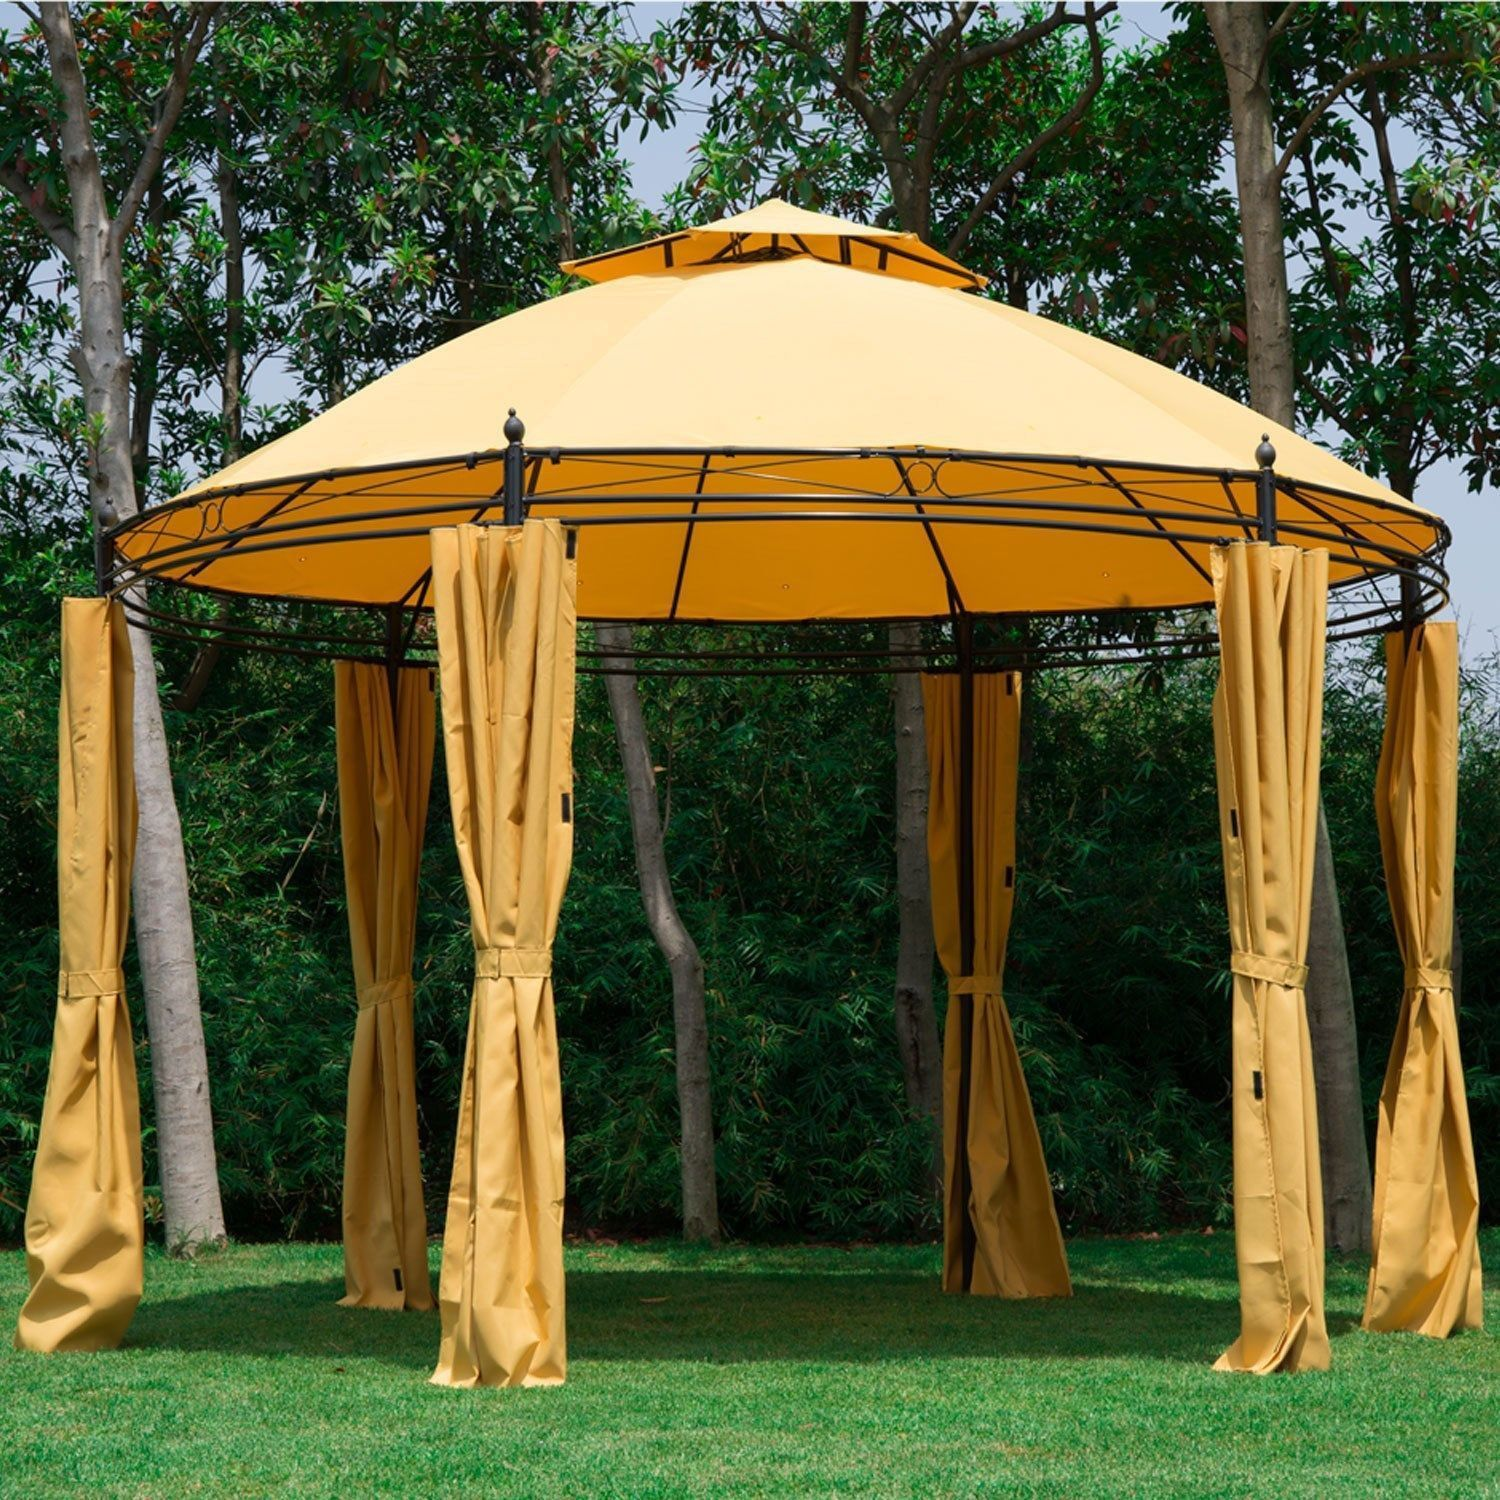 Gazebo curtains outdoor - Outdoor 11 5 Round Double Tier Roof Gazebo Canopy Patio Shelter Tent W Curtains Orange